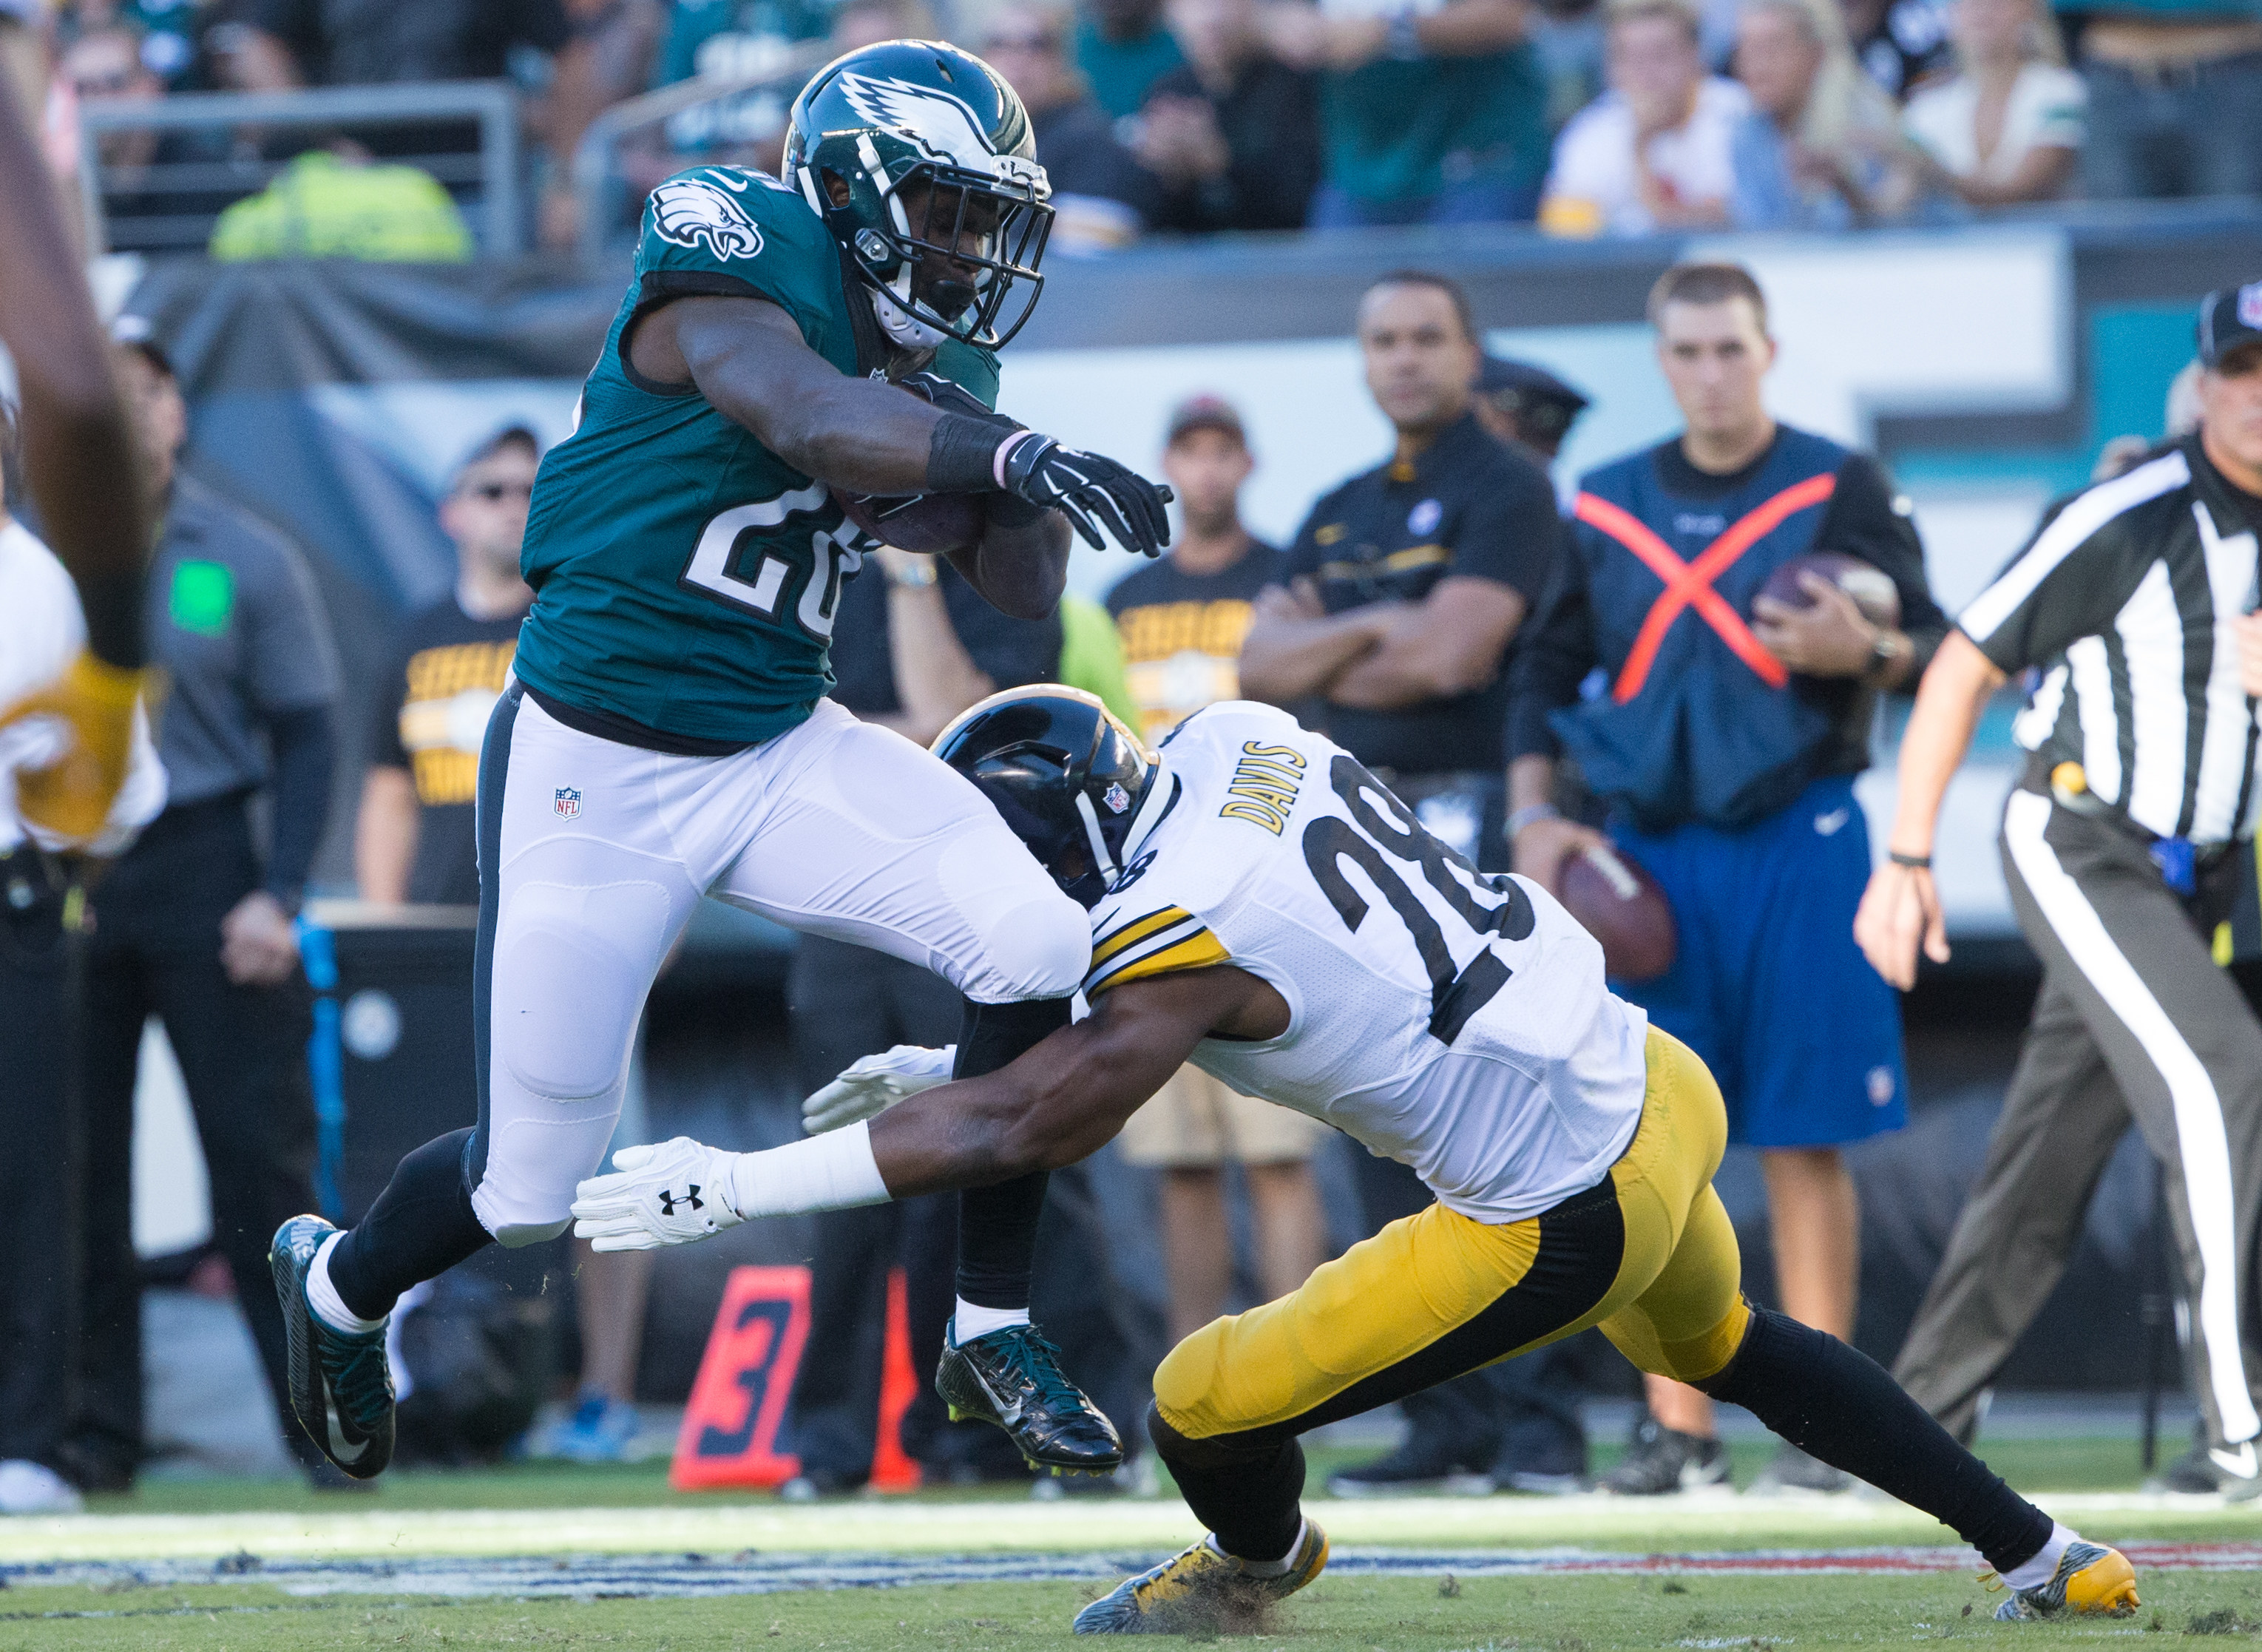 So what does Philadelphia do about Wendell Smallwood?